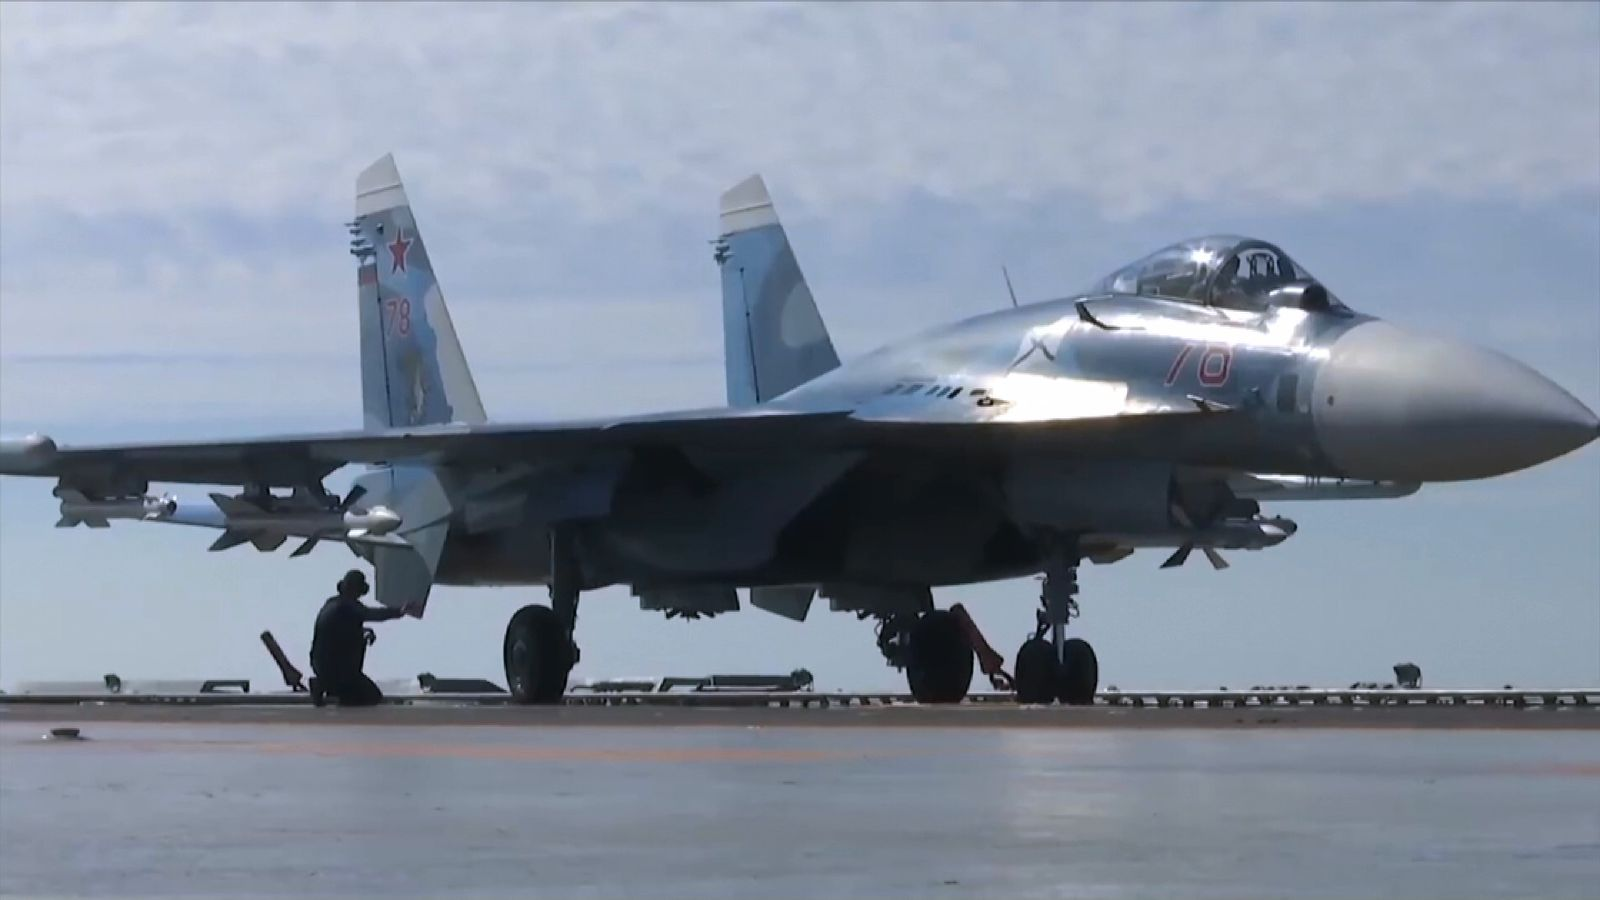 Russian aircraft carrier Admiral Kuznetsov launches planes over Syria